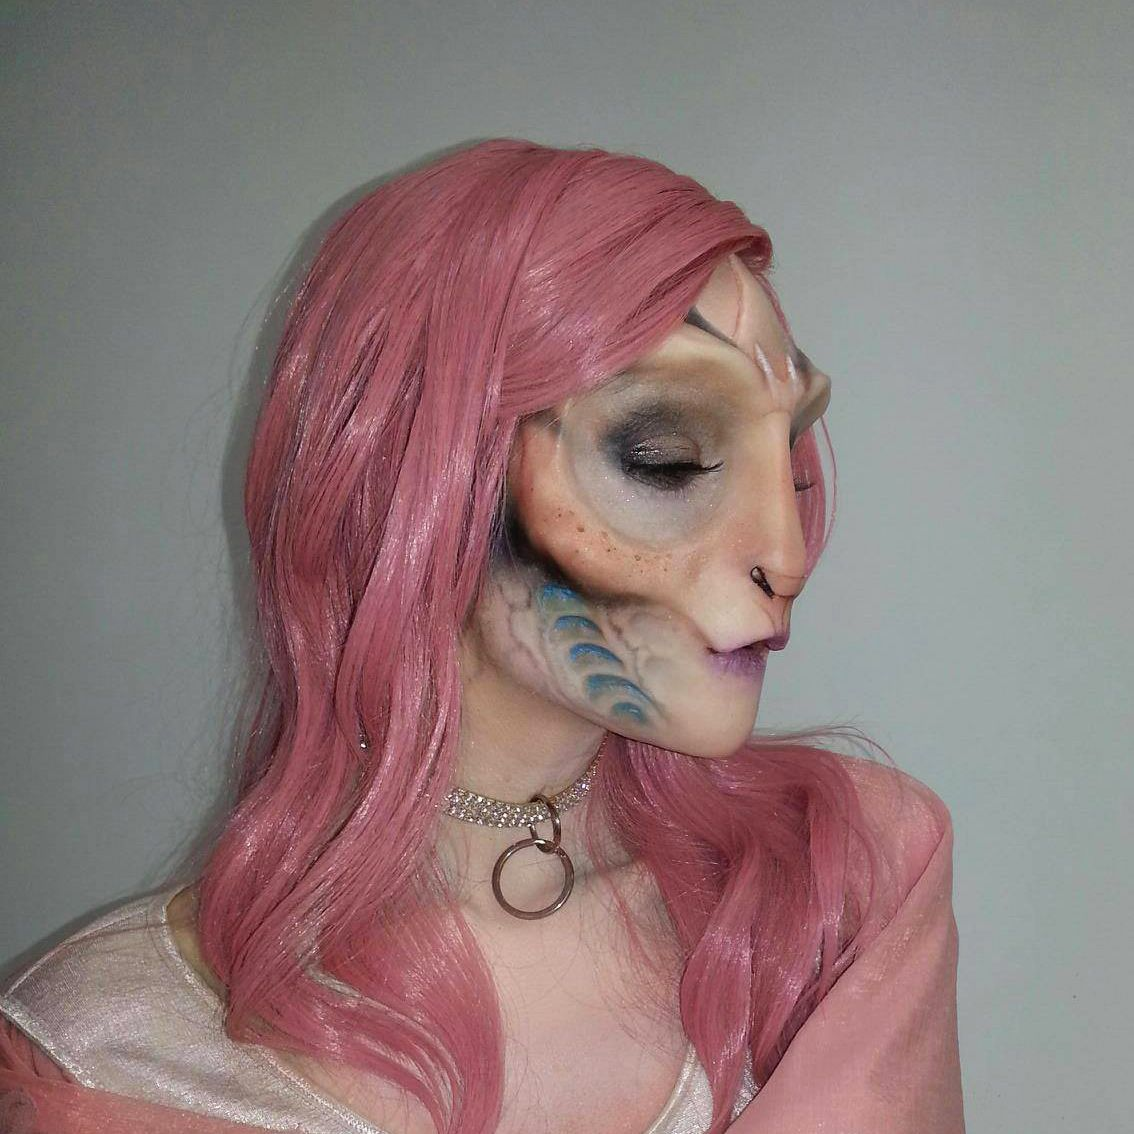 How To Sculpt u Mould Silicone Prosthetics Sexy FX Makeup